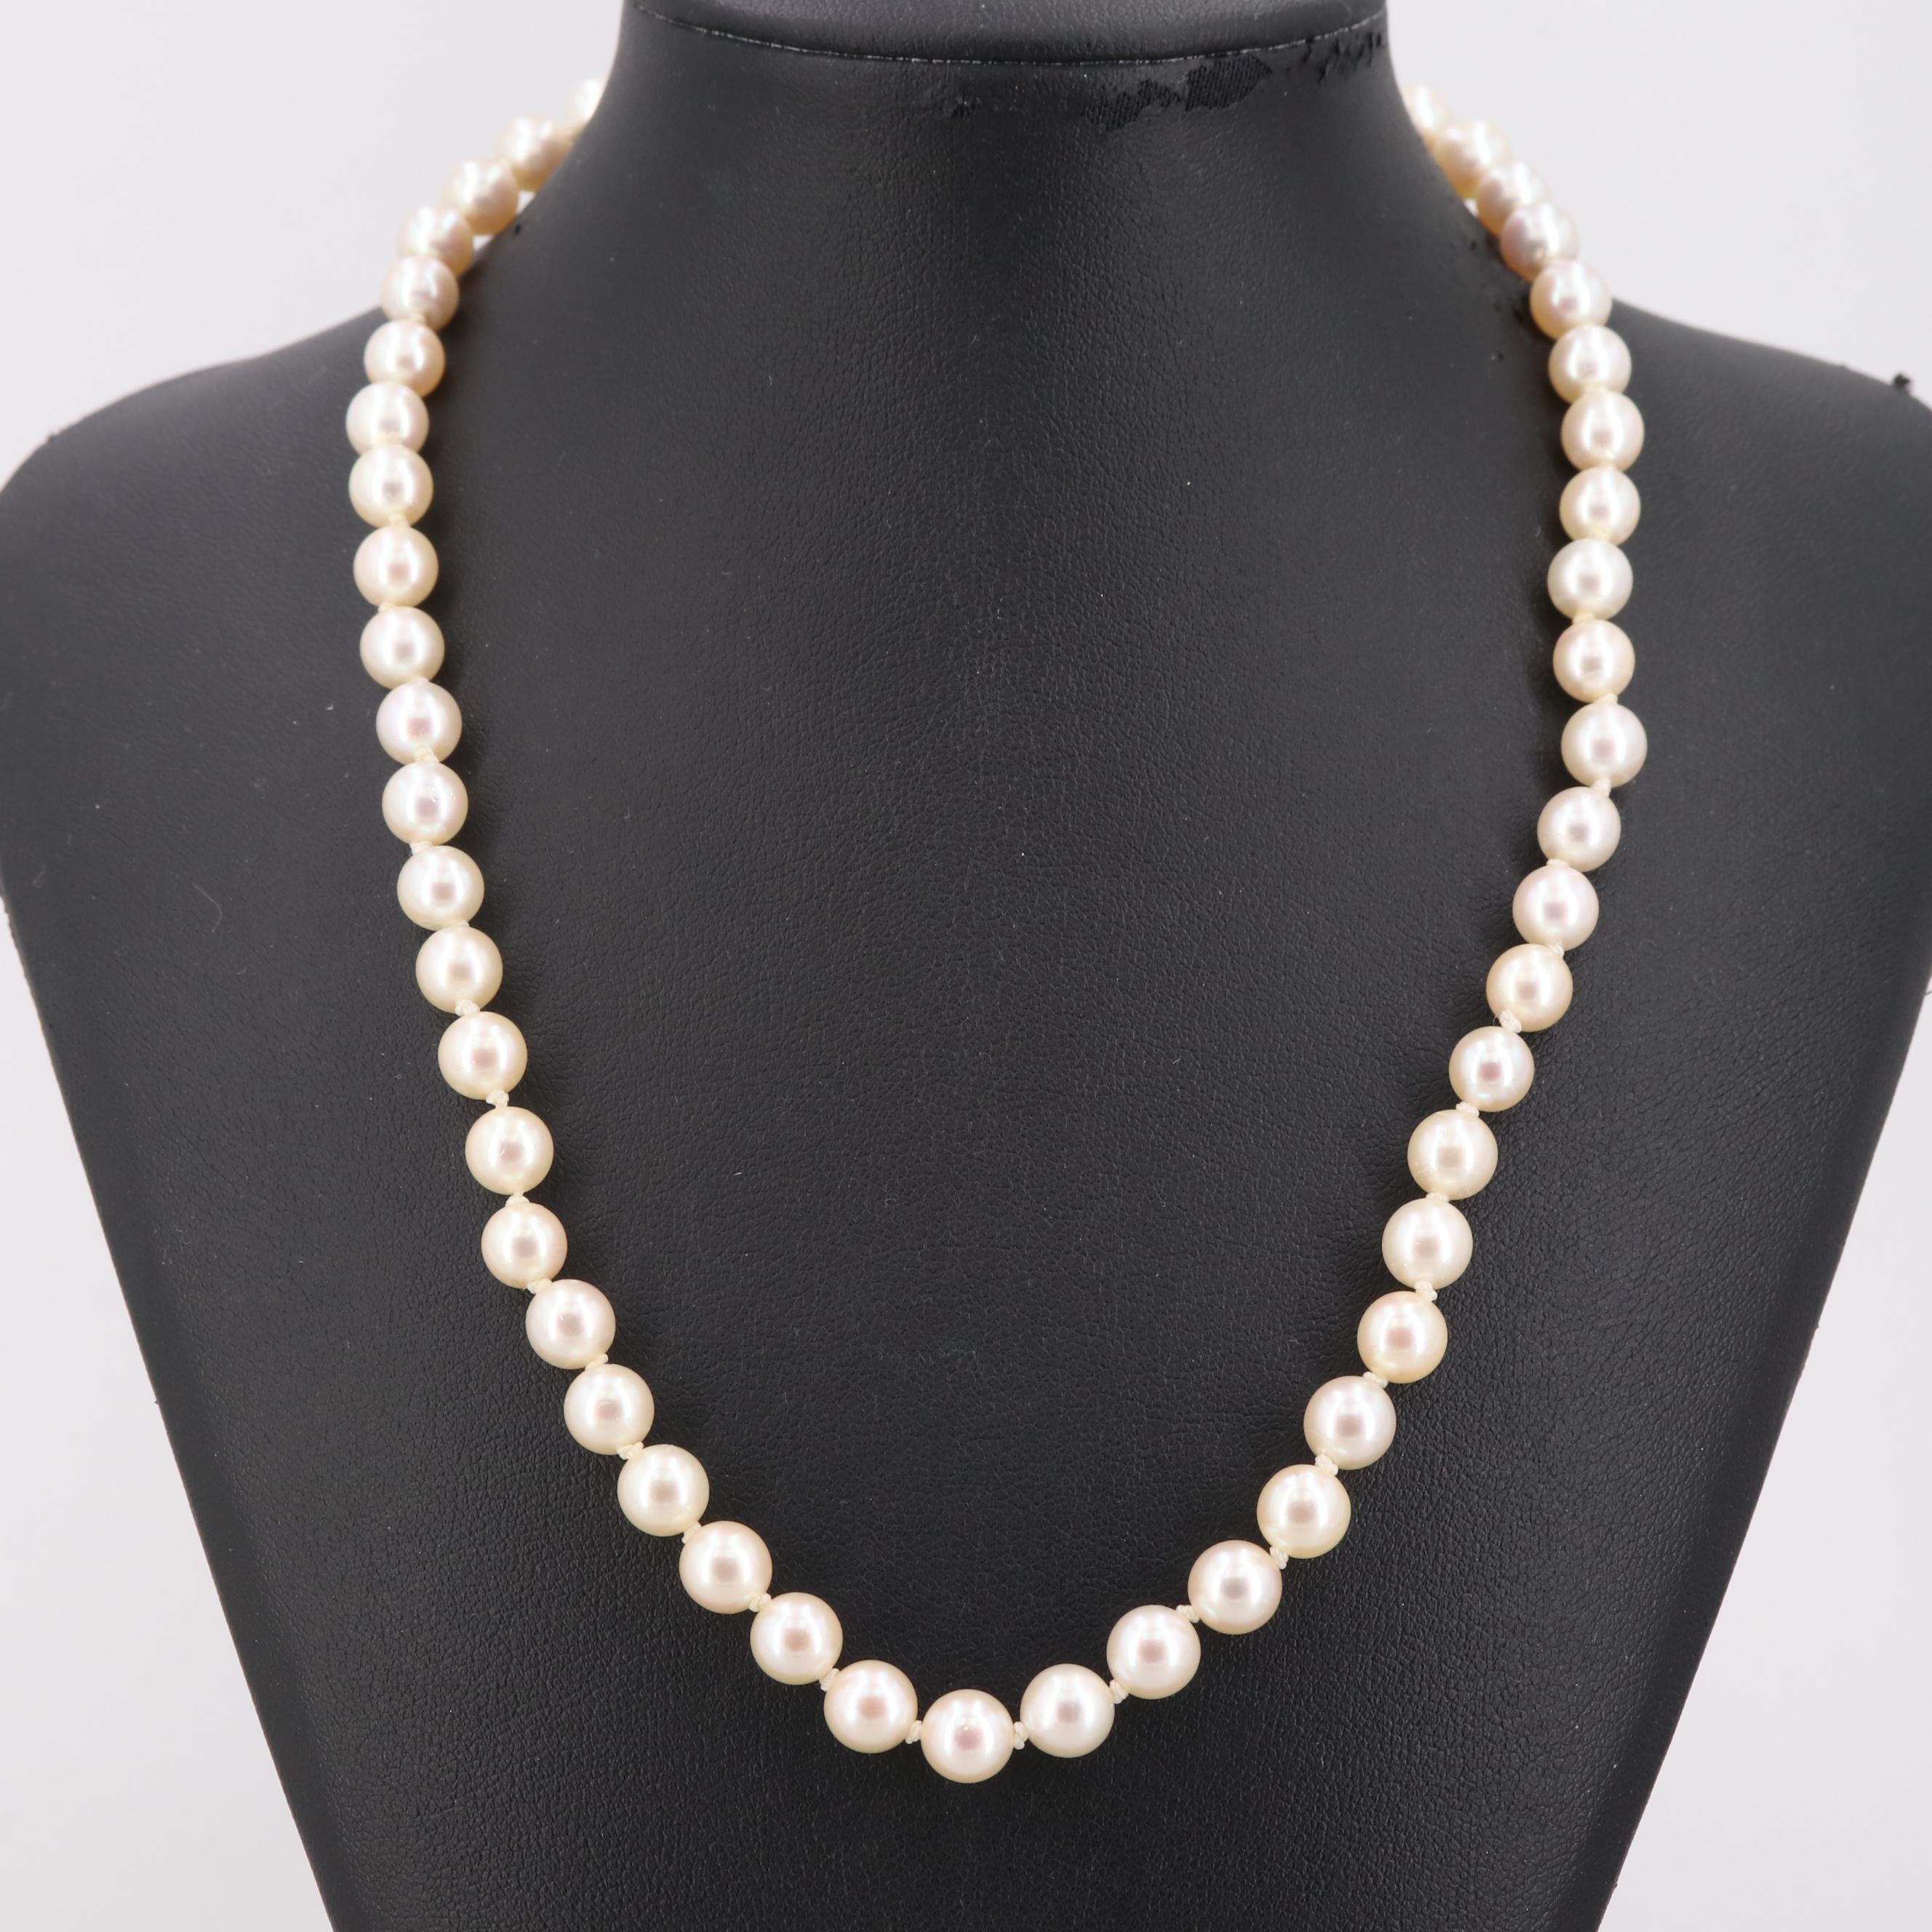 Cultured Pearl Bead Necklace with Sterling Silver